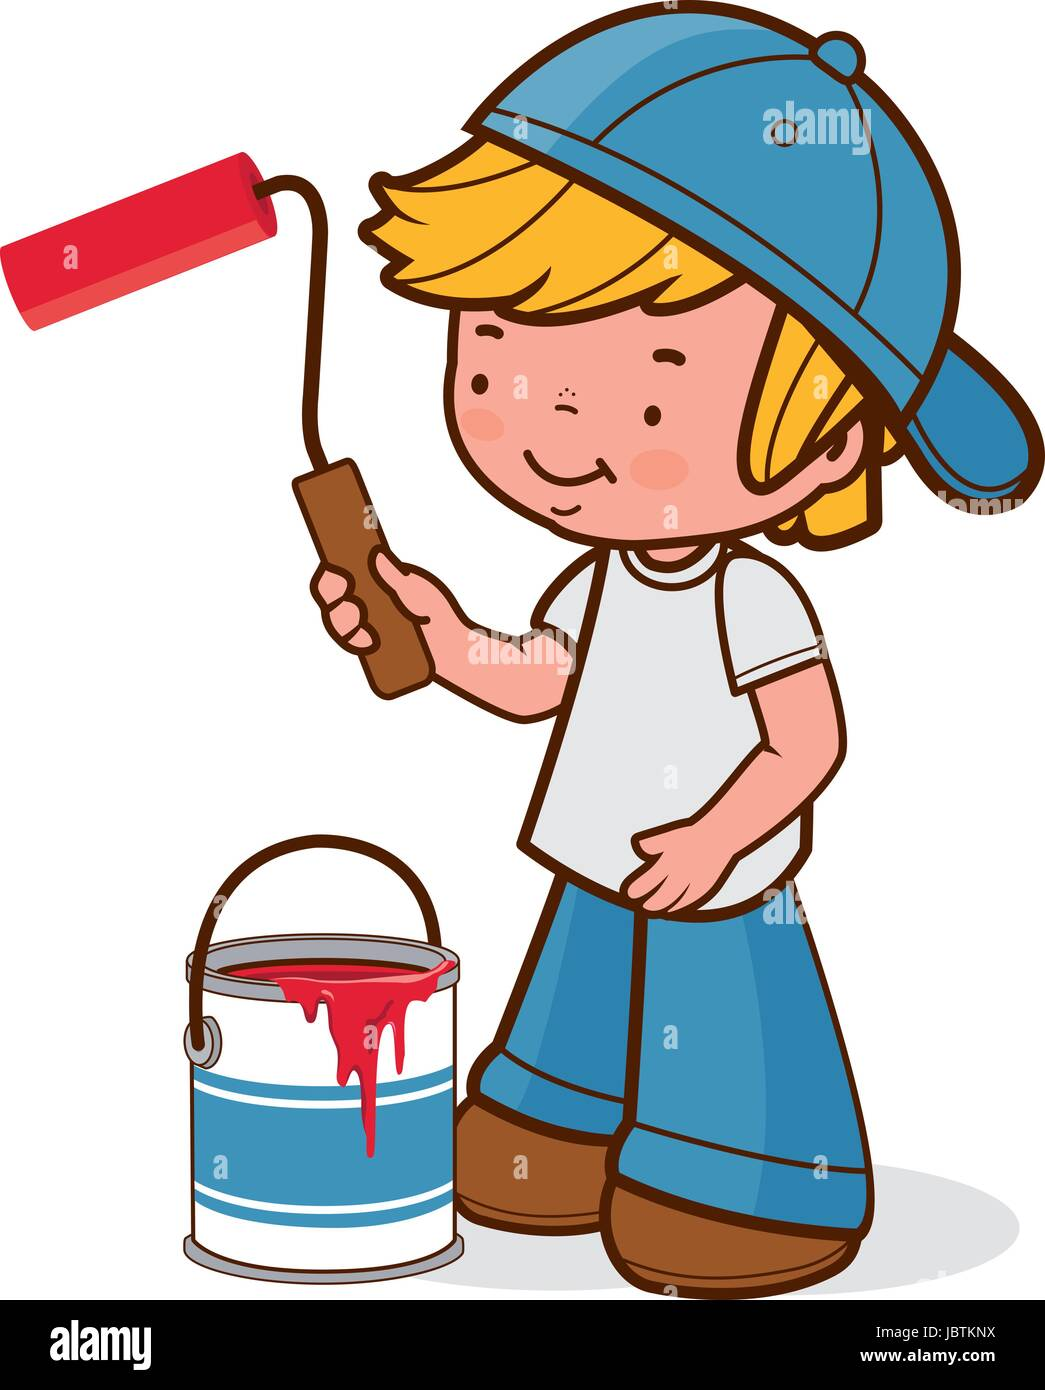 Boy Painting With A Paint Roller And A Paint Bucket Vector Stock Vector Image Art Alamy